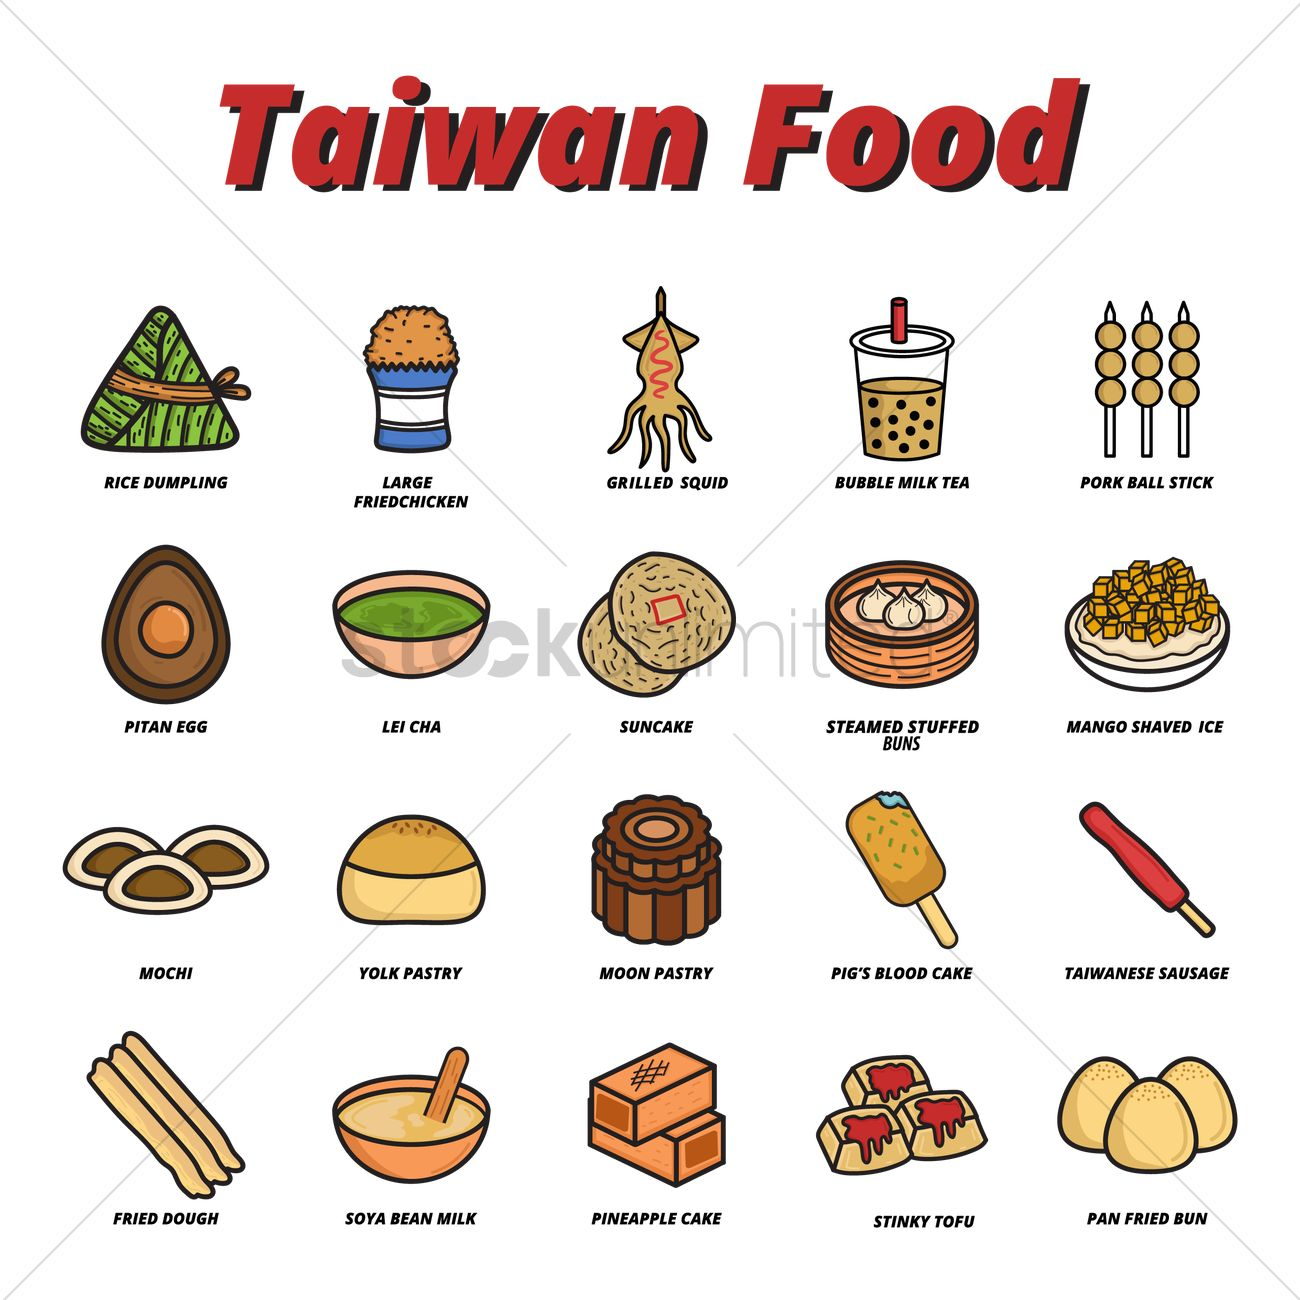 Indian Food In Taiwan